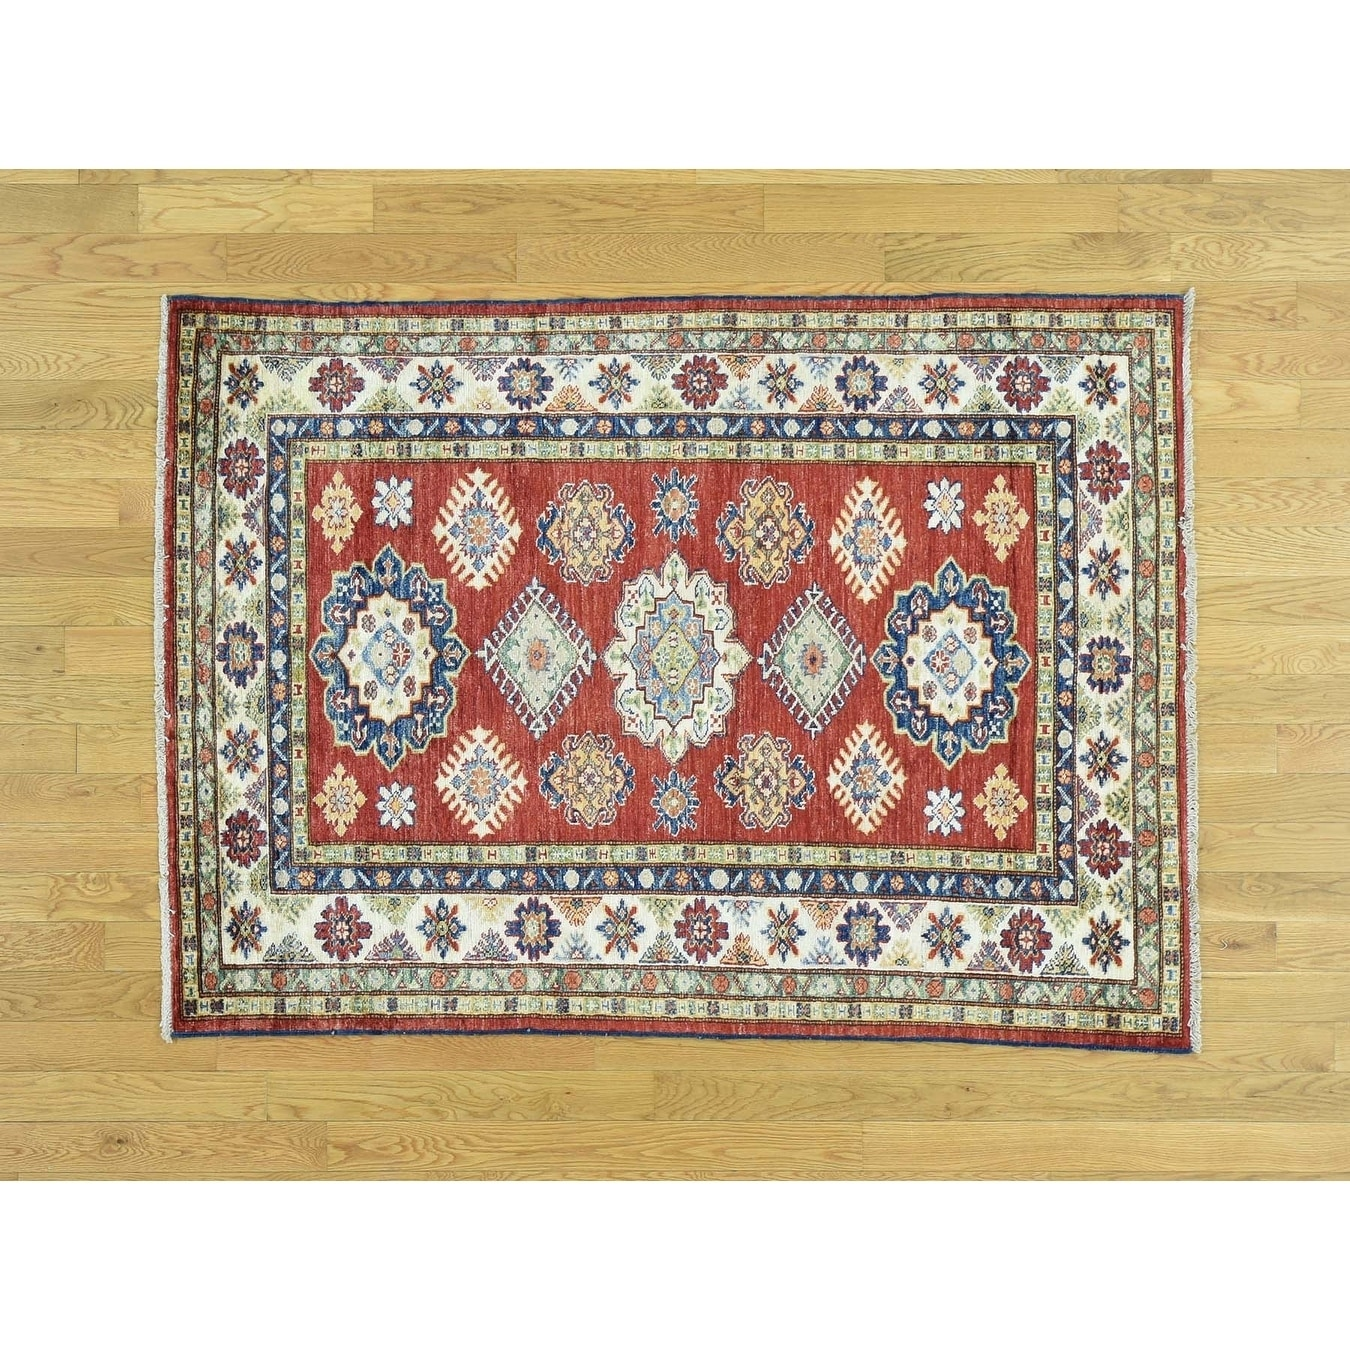 Hand Knotted Red Kazak with Wool Oriental Rug - 41 x 57